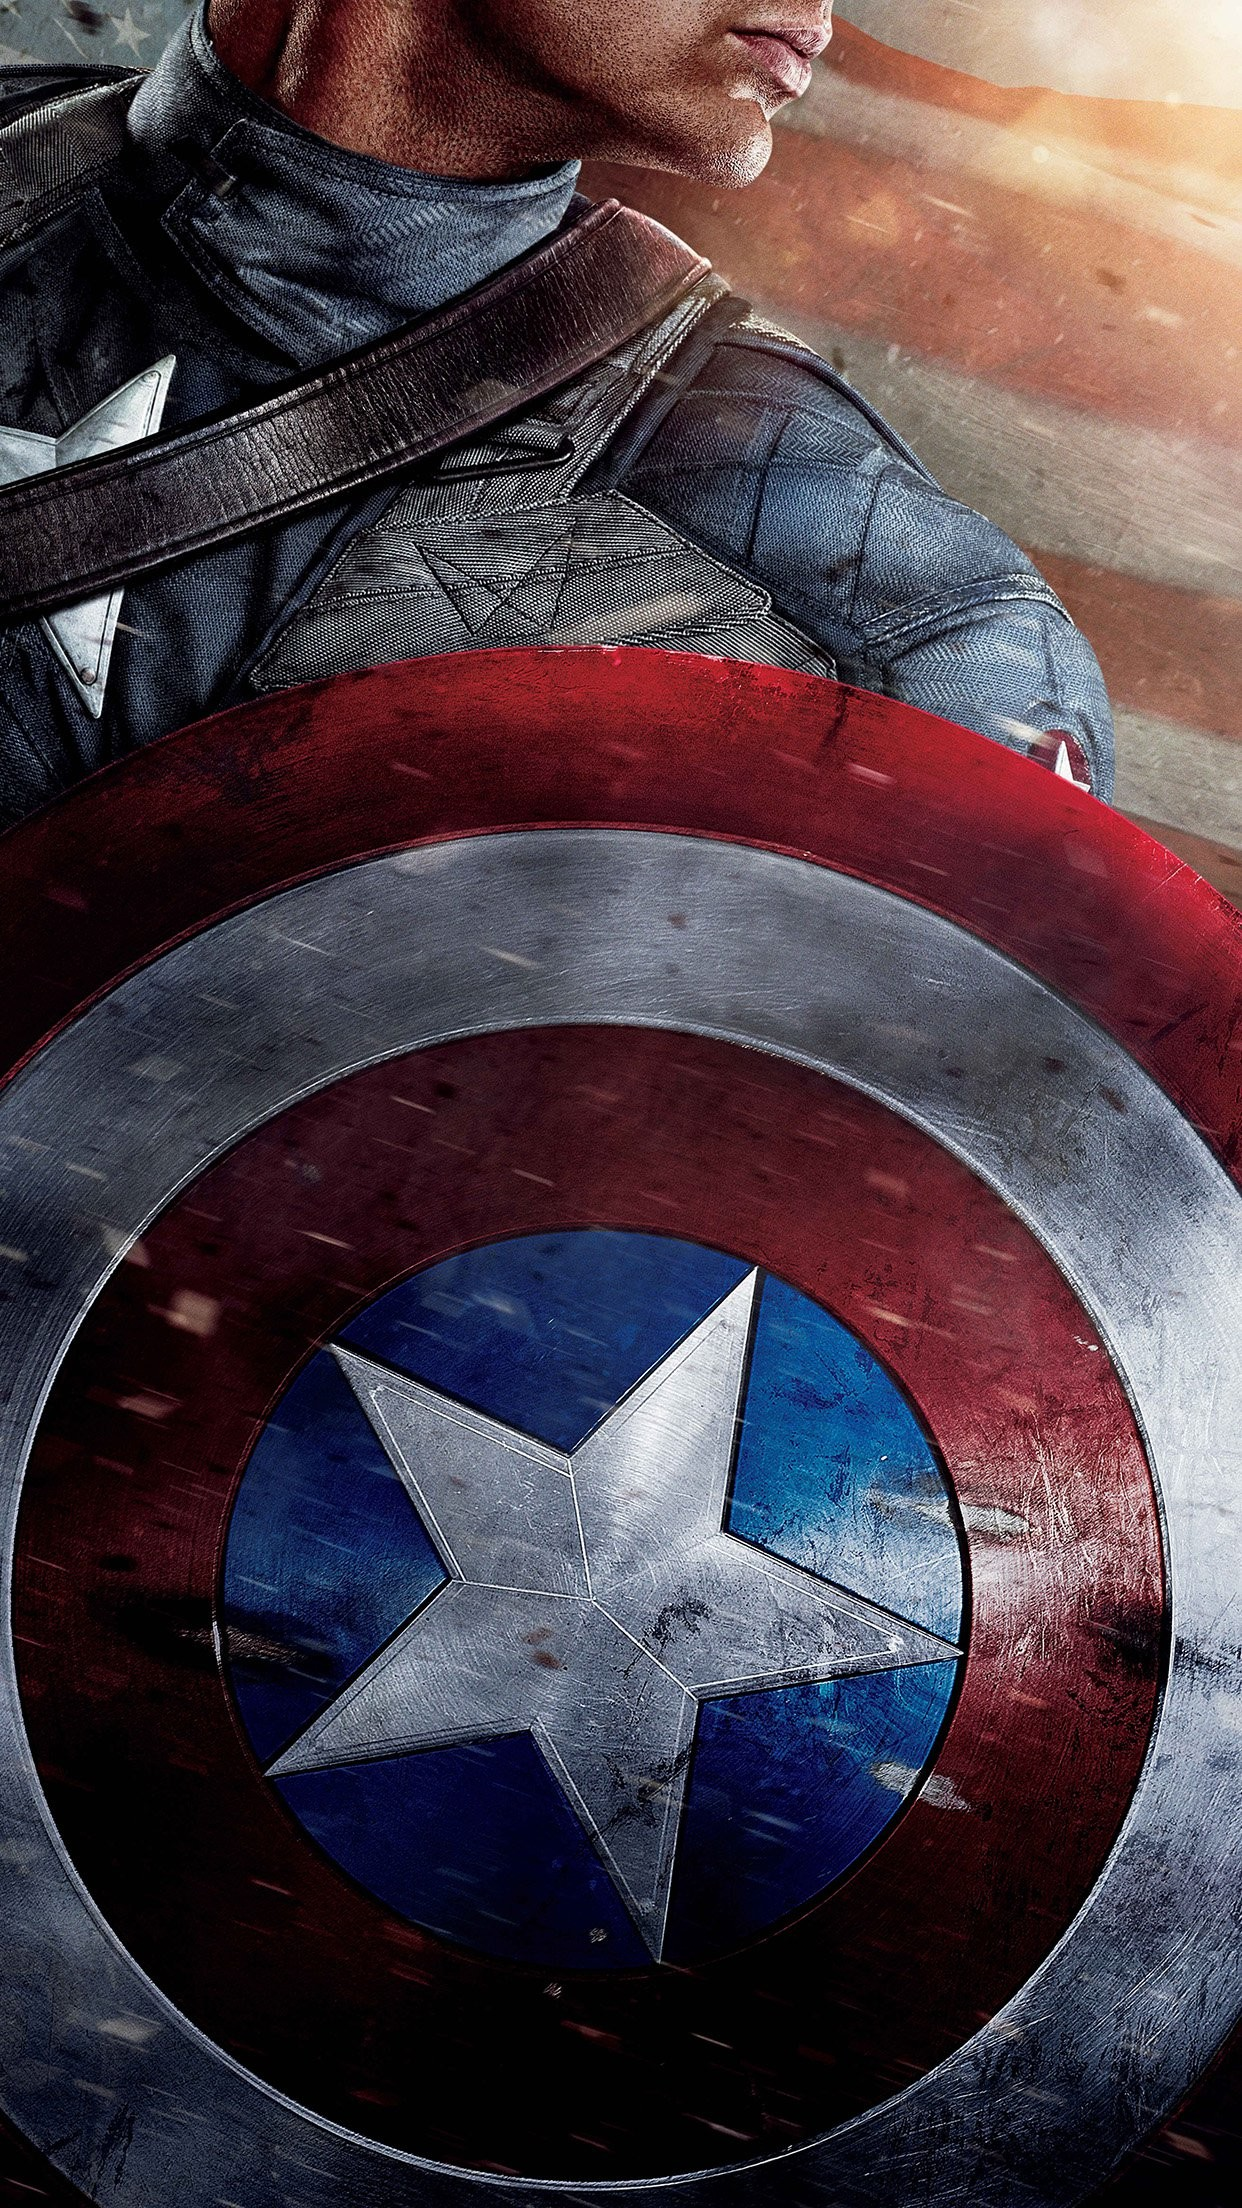 Free Download 78 Captain America Wallpapers On Wallpaperplay 1242x2208 For Your Desktop Mobile Tablet Explore 33 Captain America Phone Wallpapers Captain America Phone Wallpaper Captain America Phone Wallpapers Captain America Wallpaper